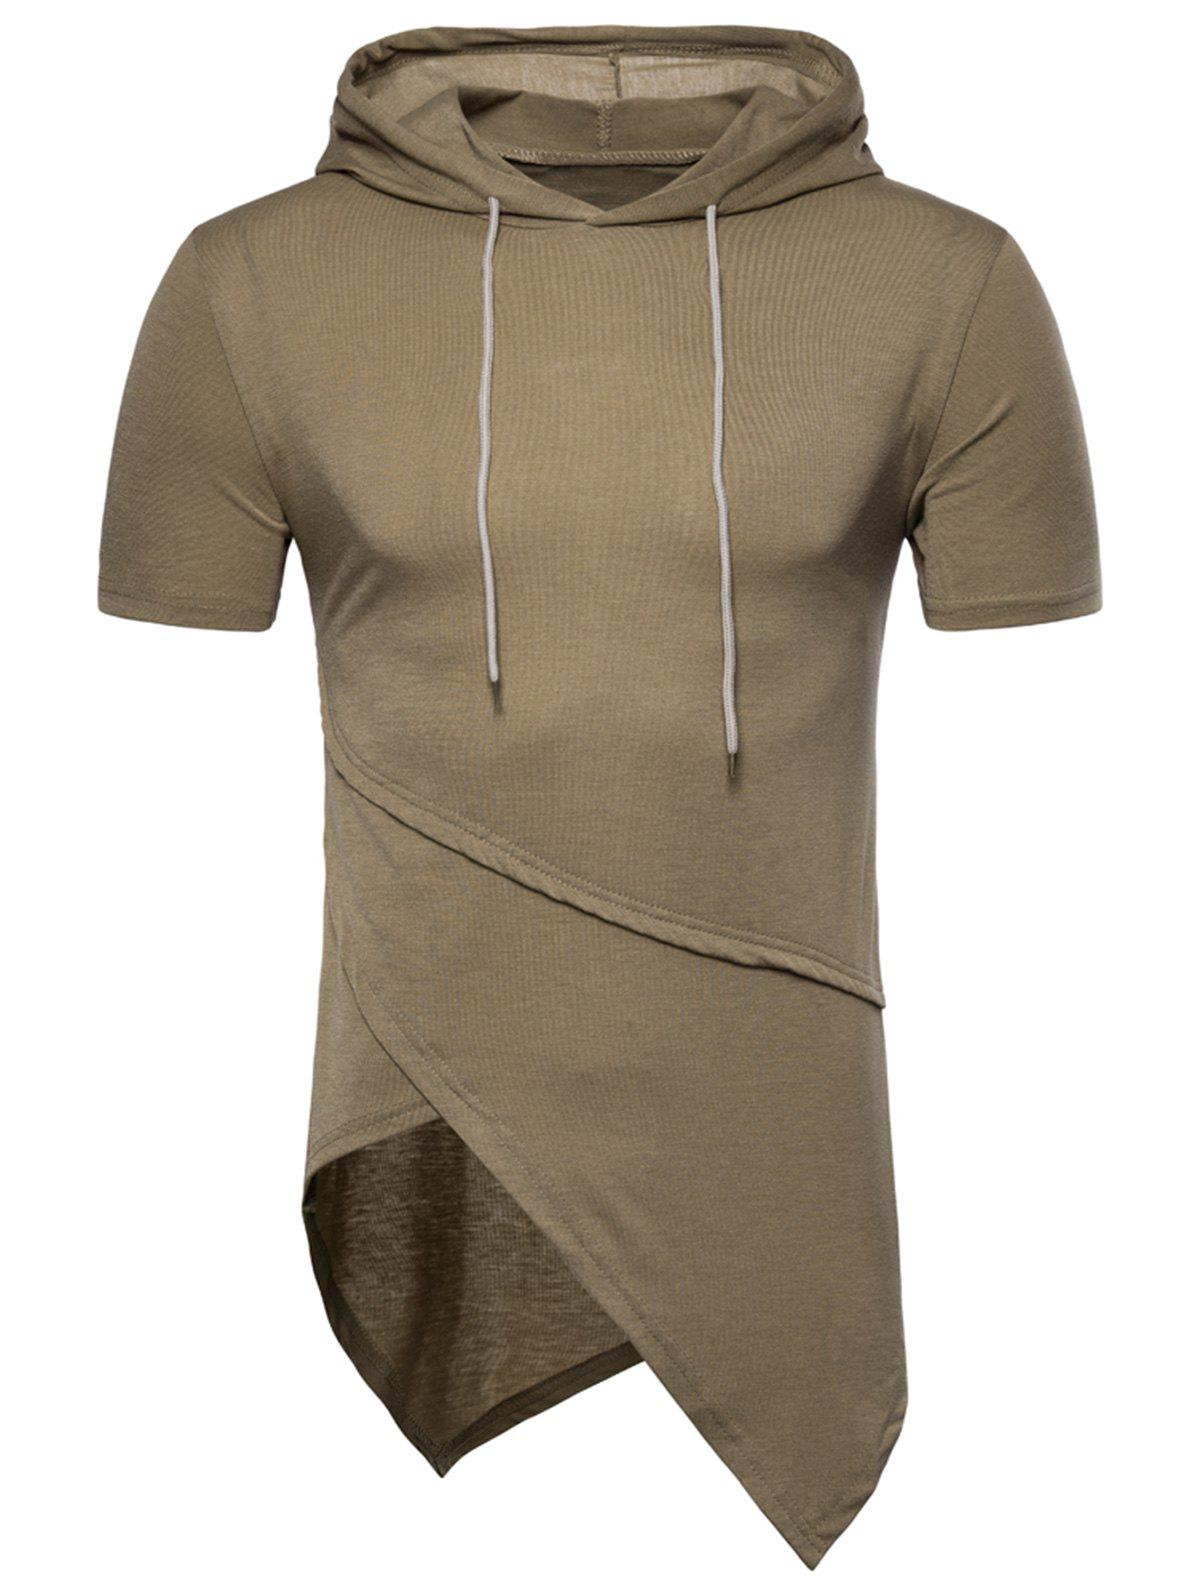 Asymmetrical Solid Color Short Sleeve Hooded T-shirt